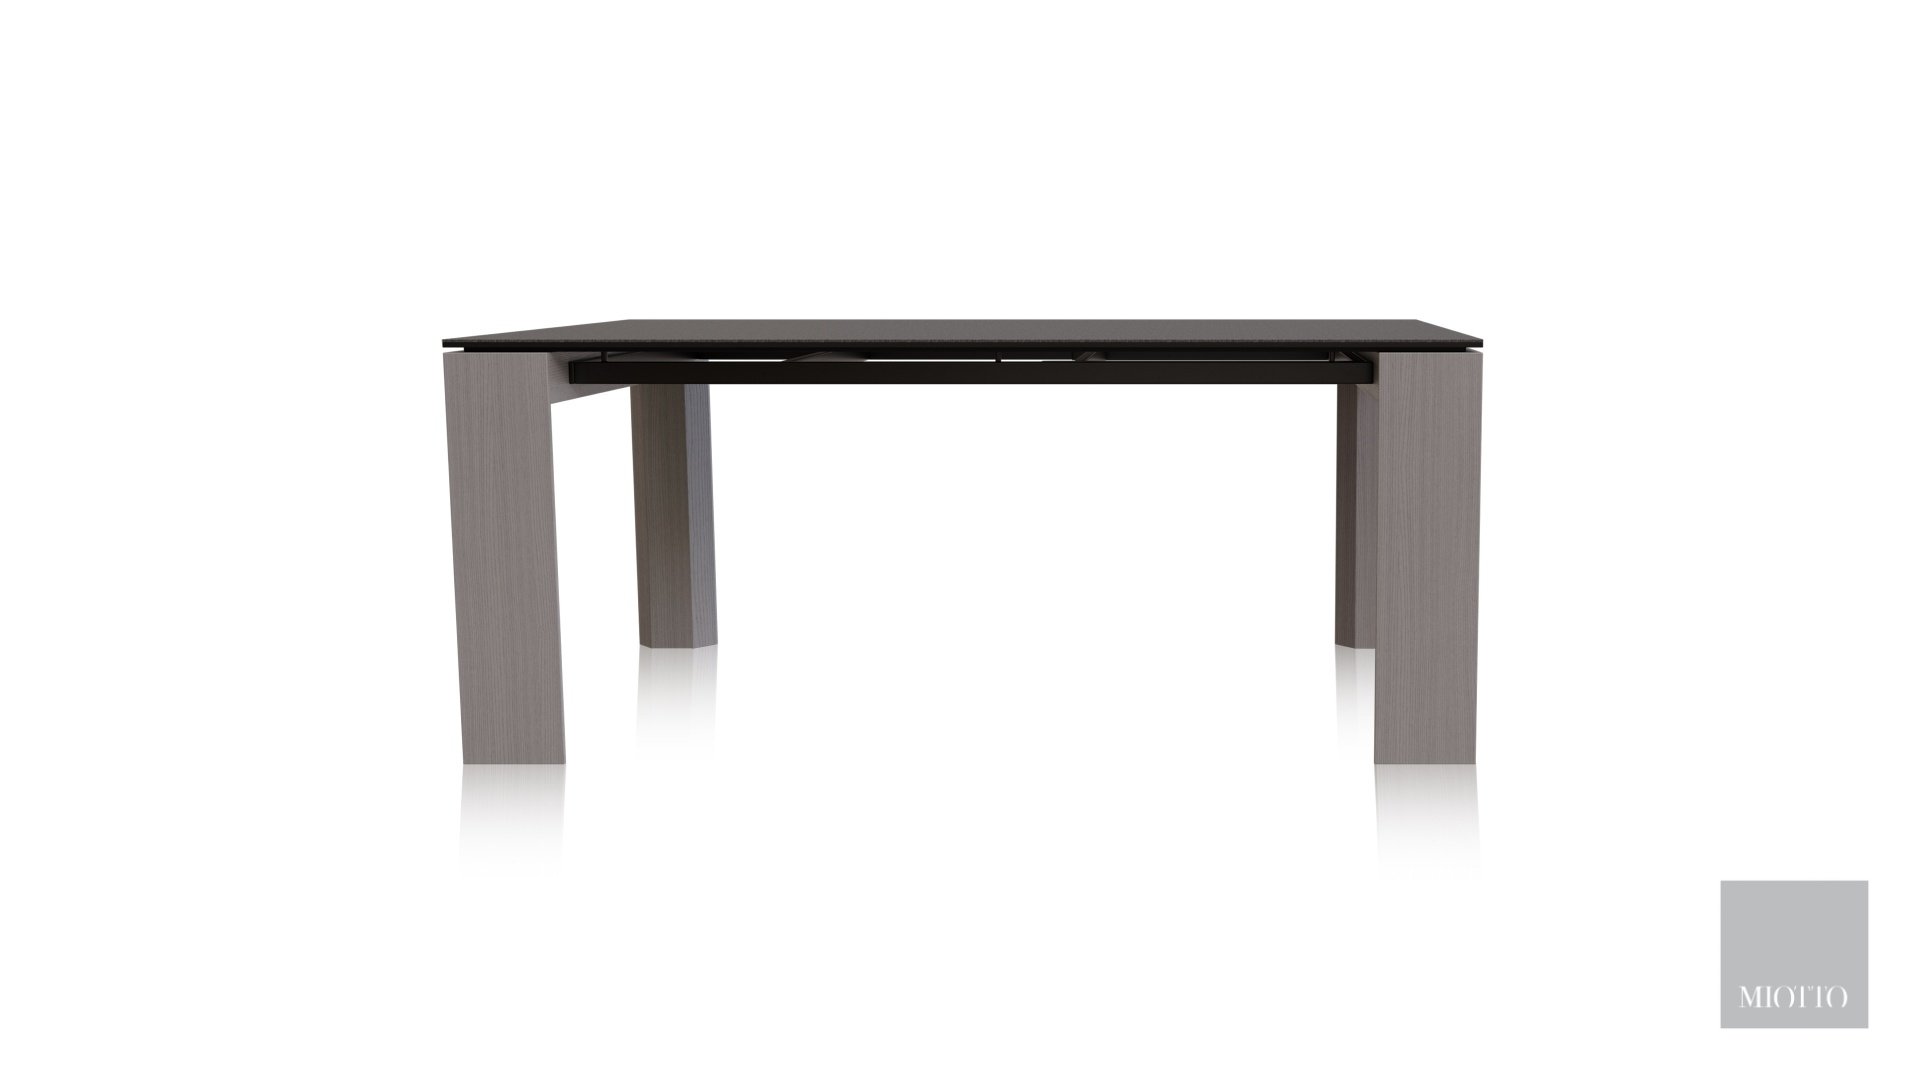 miotto_Basina dining table front closed miotto dining furniture